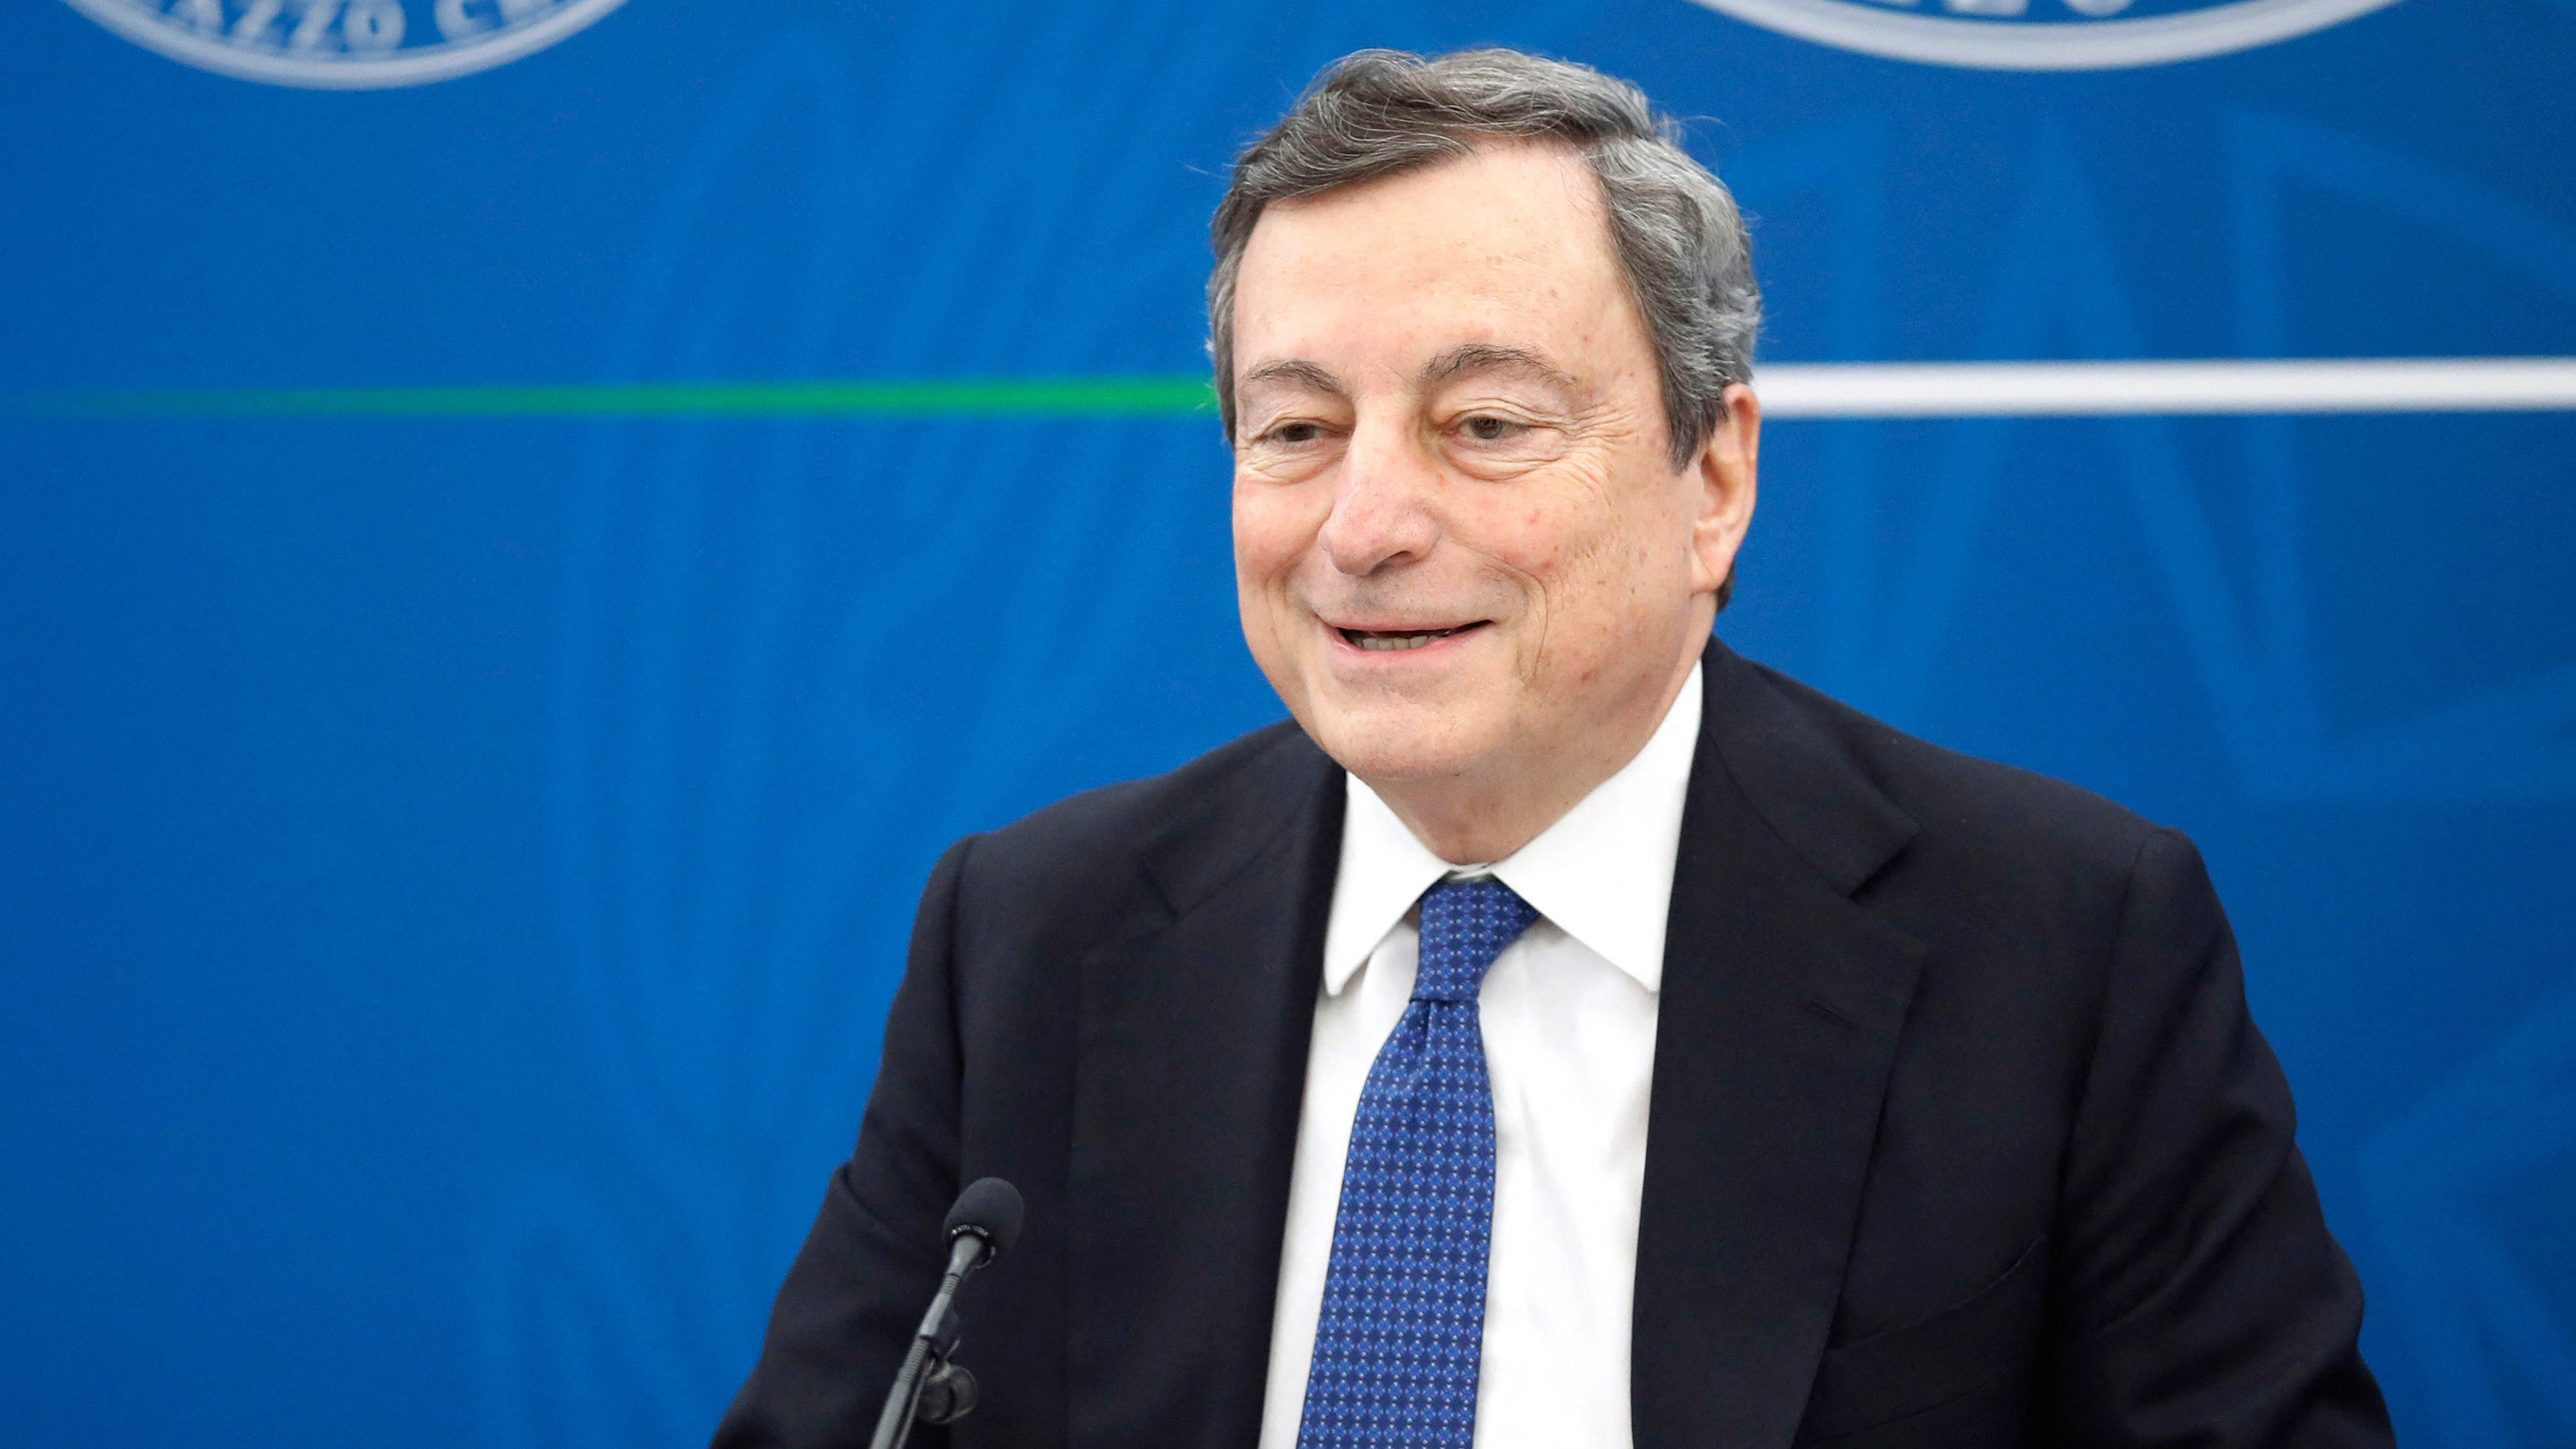 Italian Prime Minister Mario Draghi speaks during a press conference on March 26, in Rome.